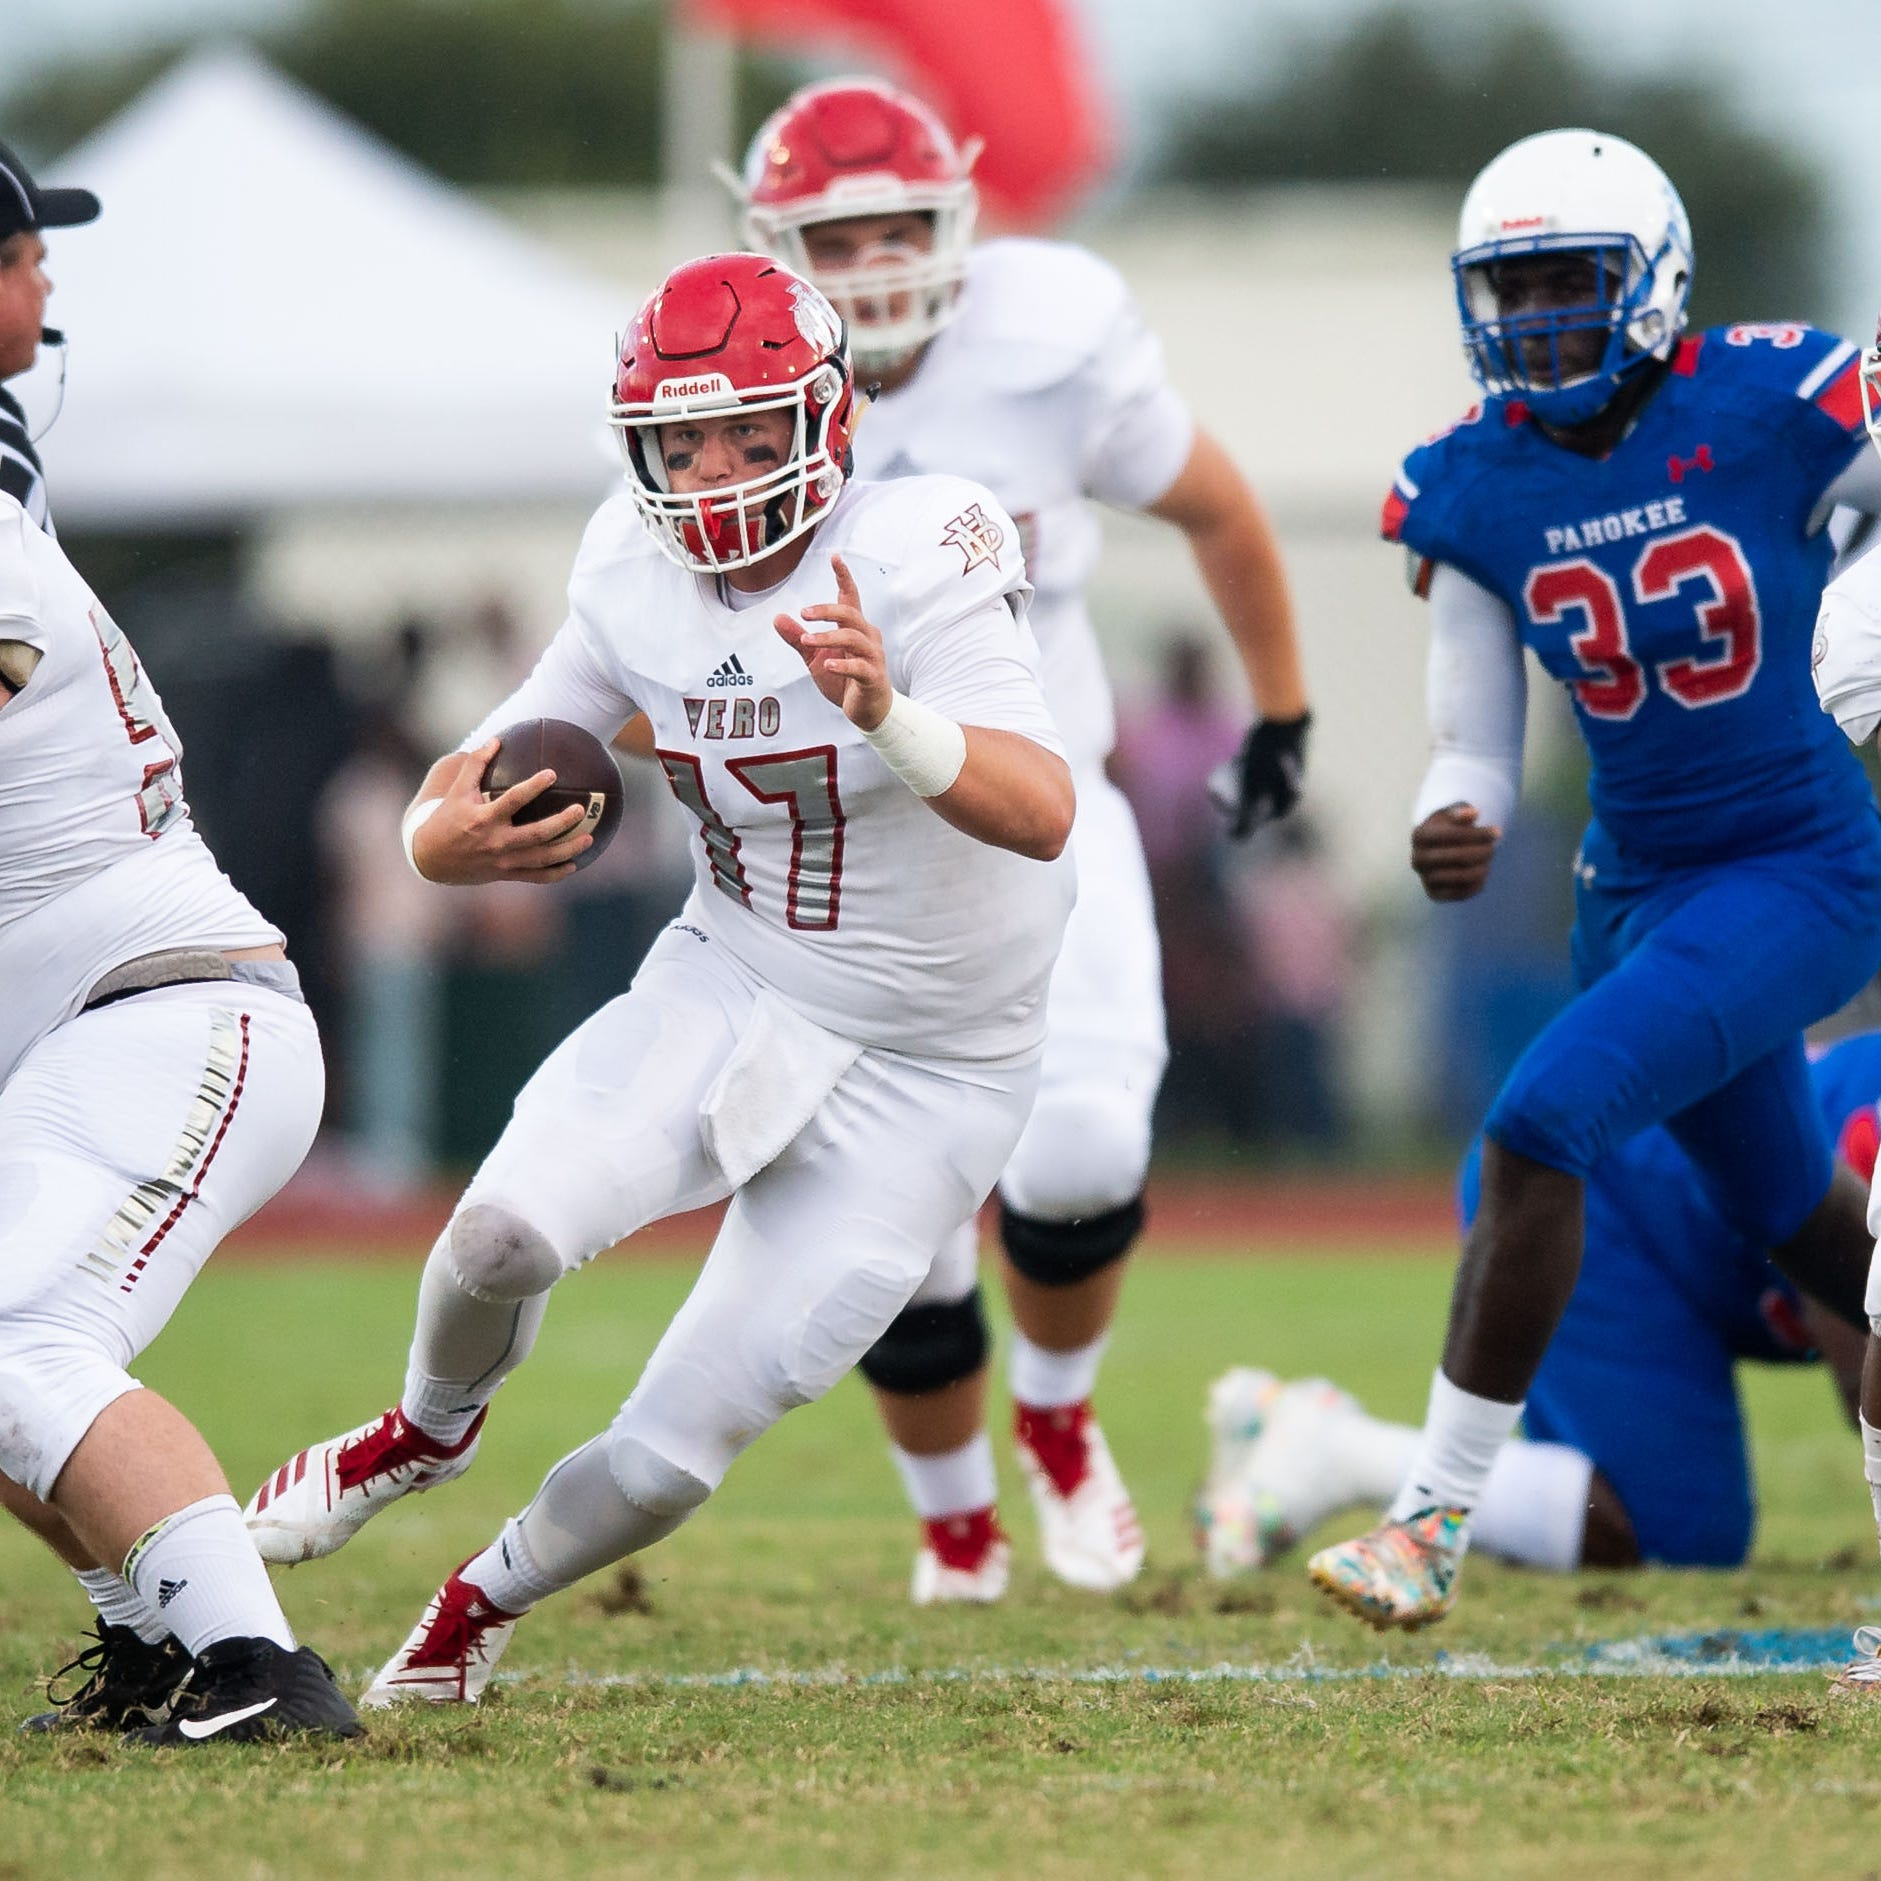 Inside Friday Night: 5-0 rivals Vero Beach, St. Lucie West Centennial await key 8-8A clash